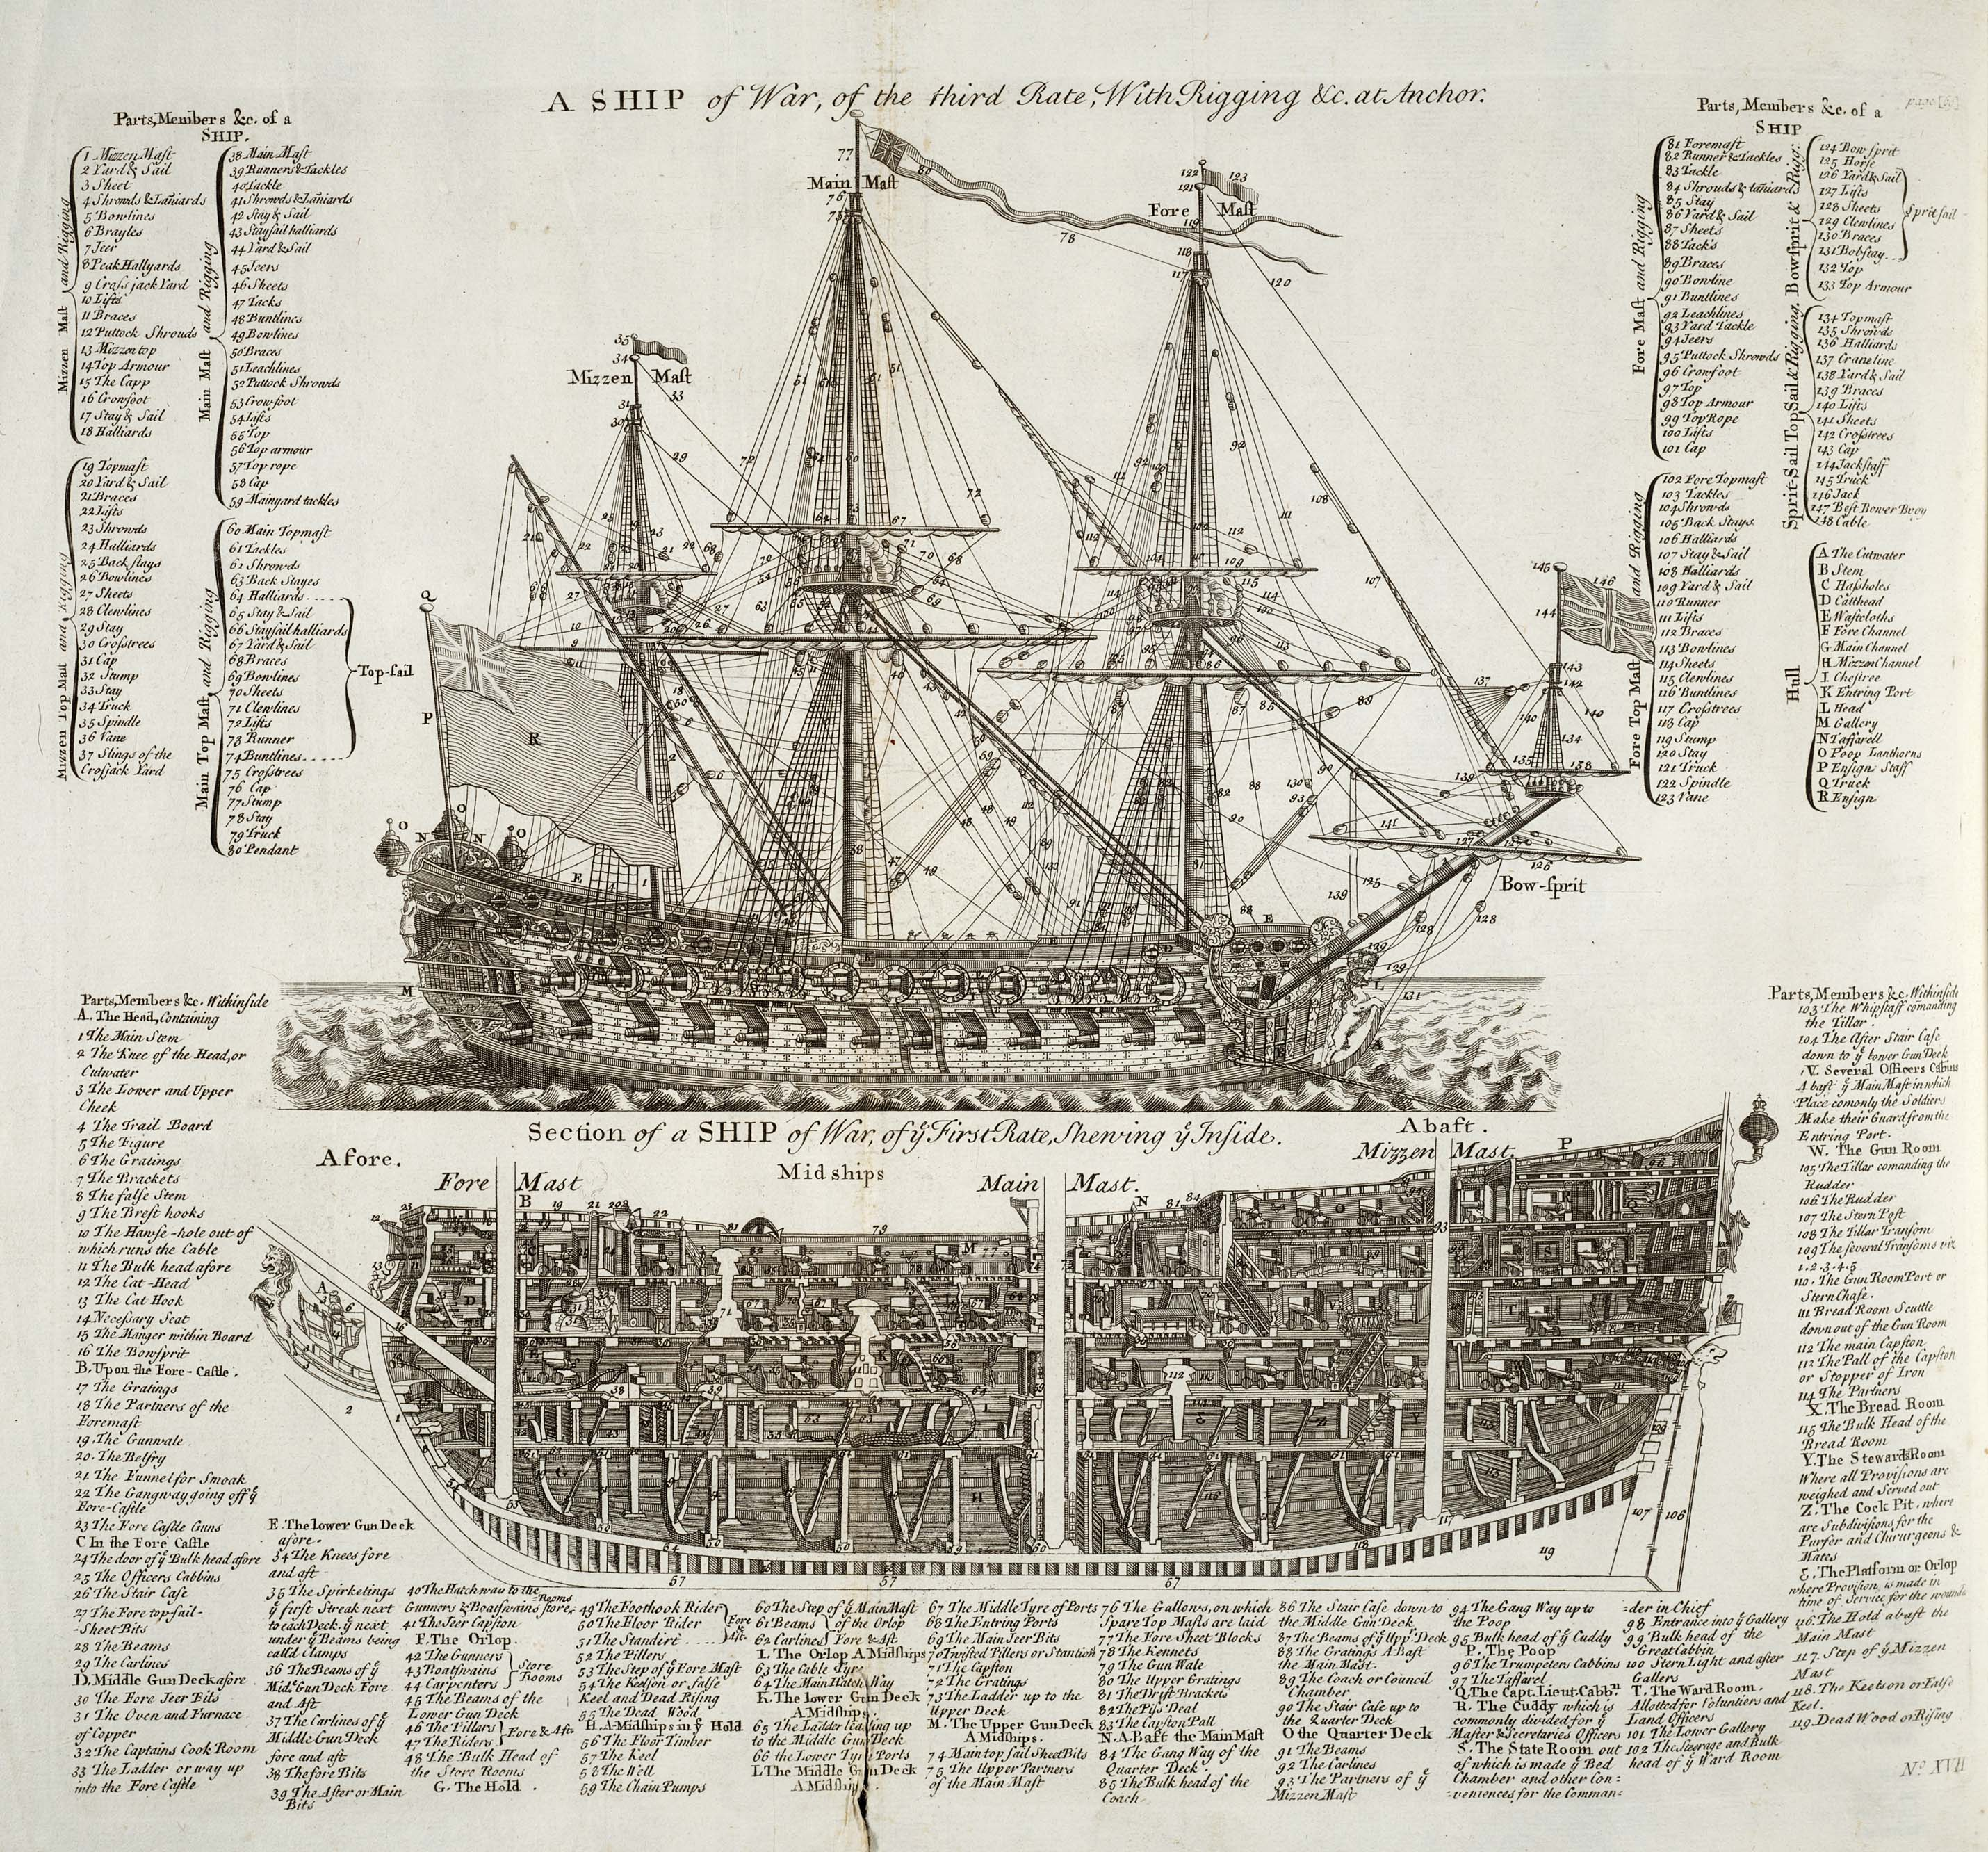 sailing ship sail diagram asco 920 contactor wiring file warship orig jpg wikimedia commons